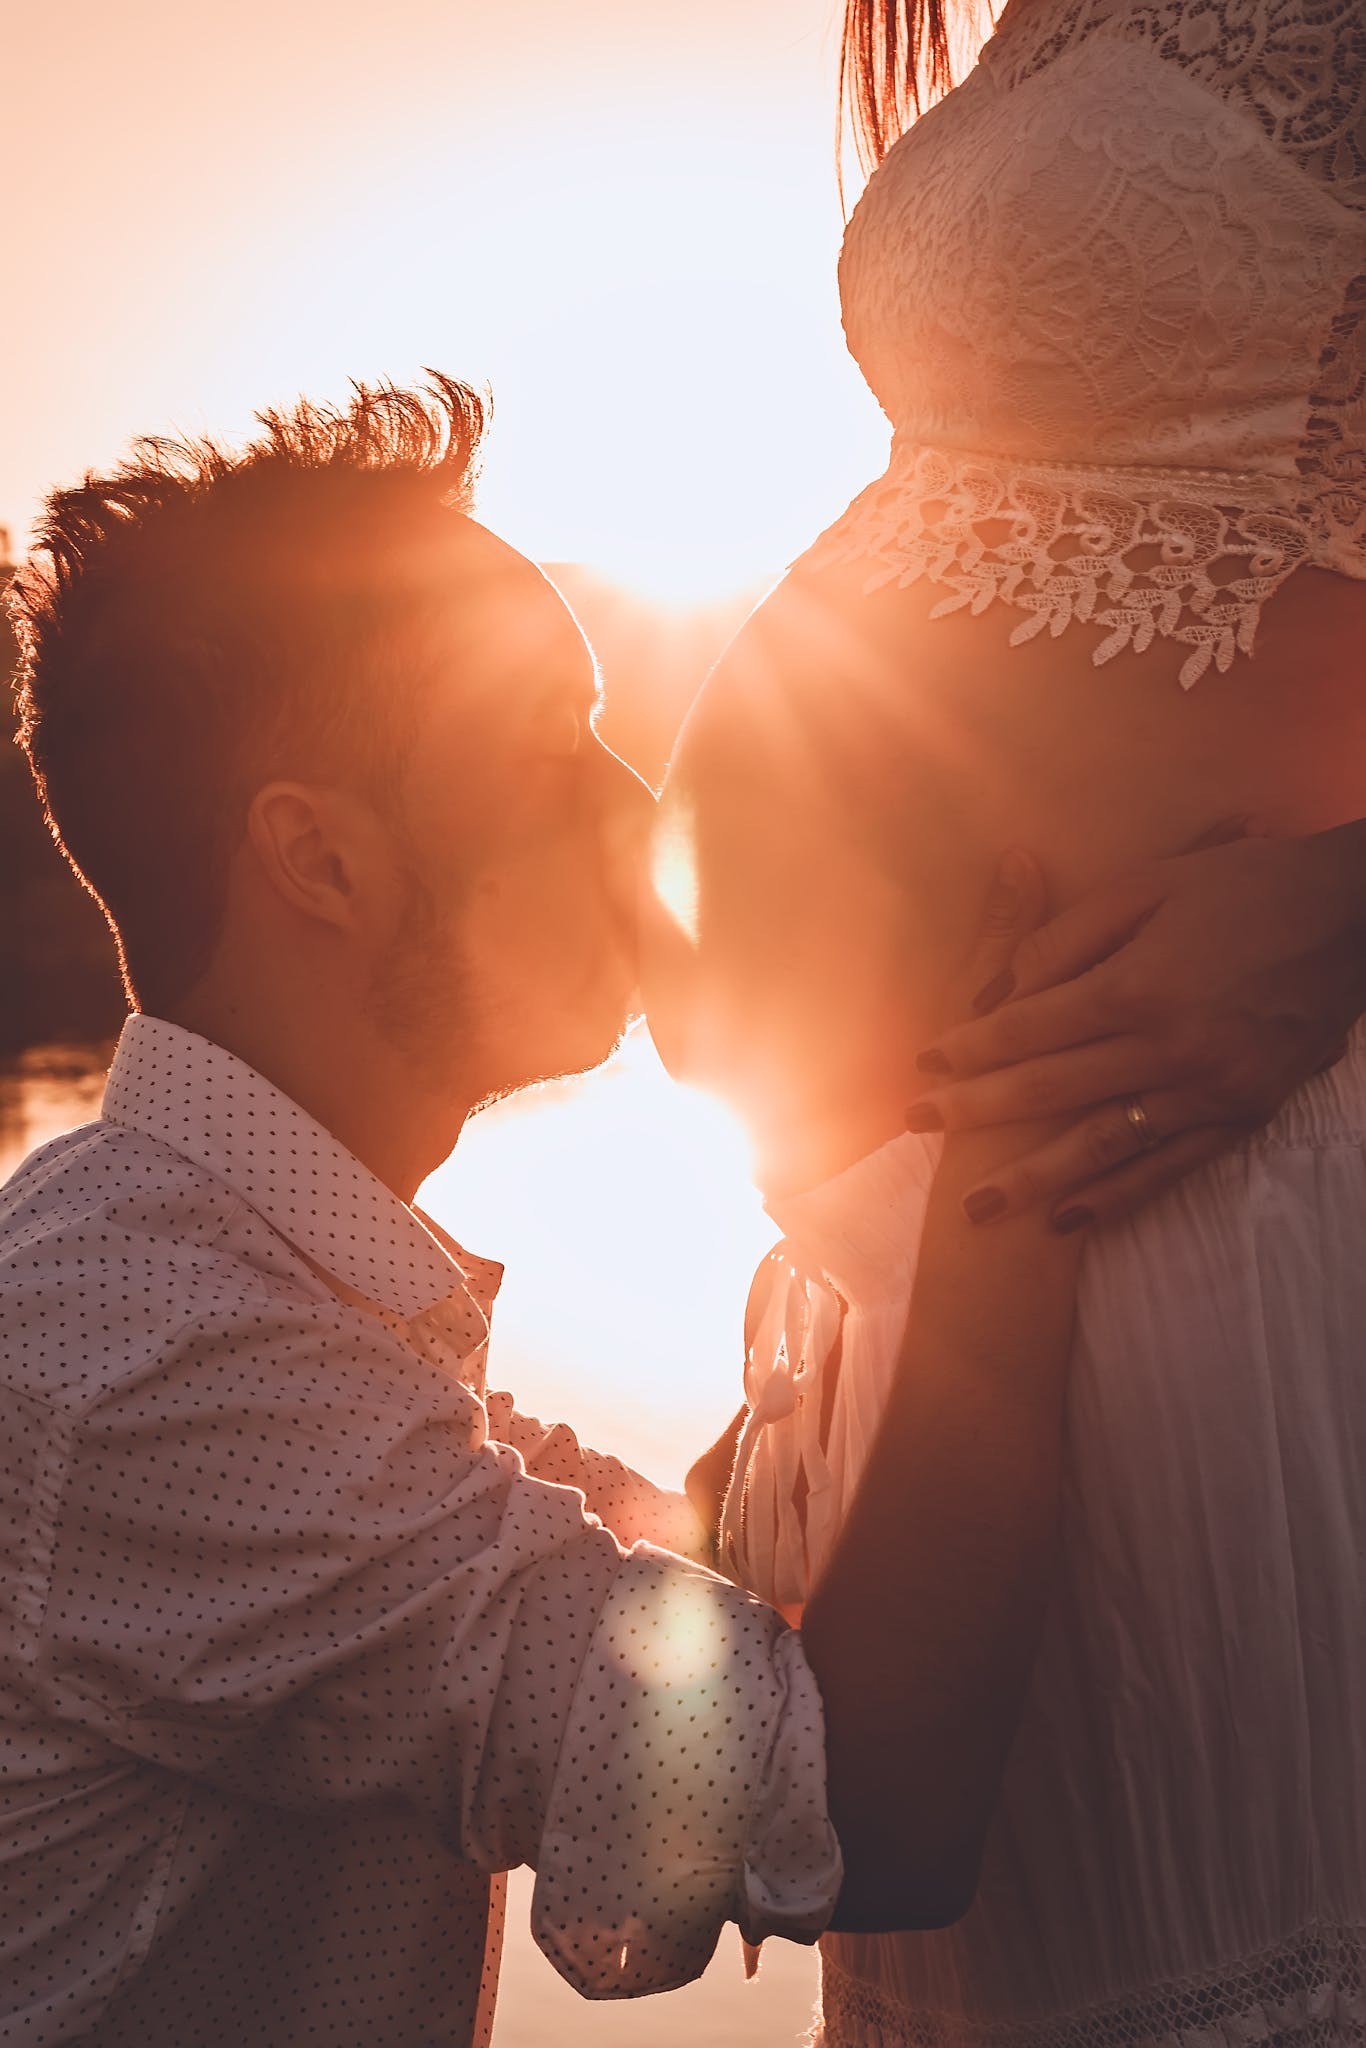 Man Kissing Woman's Belly